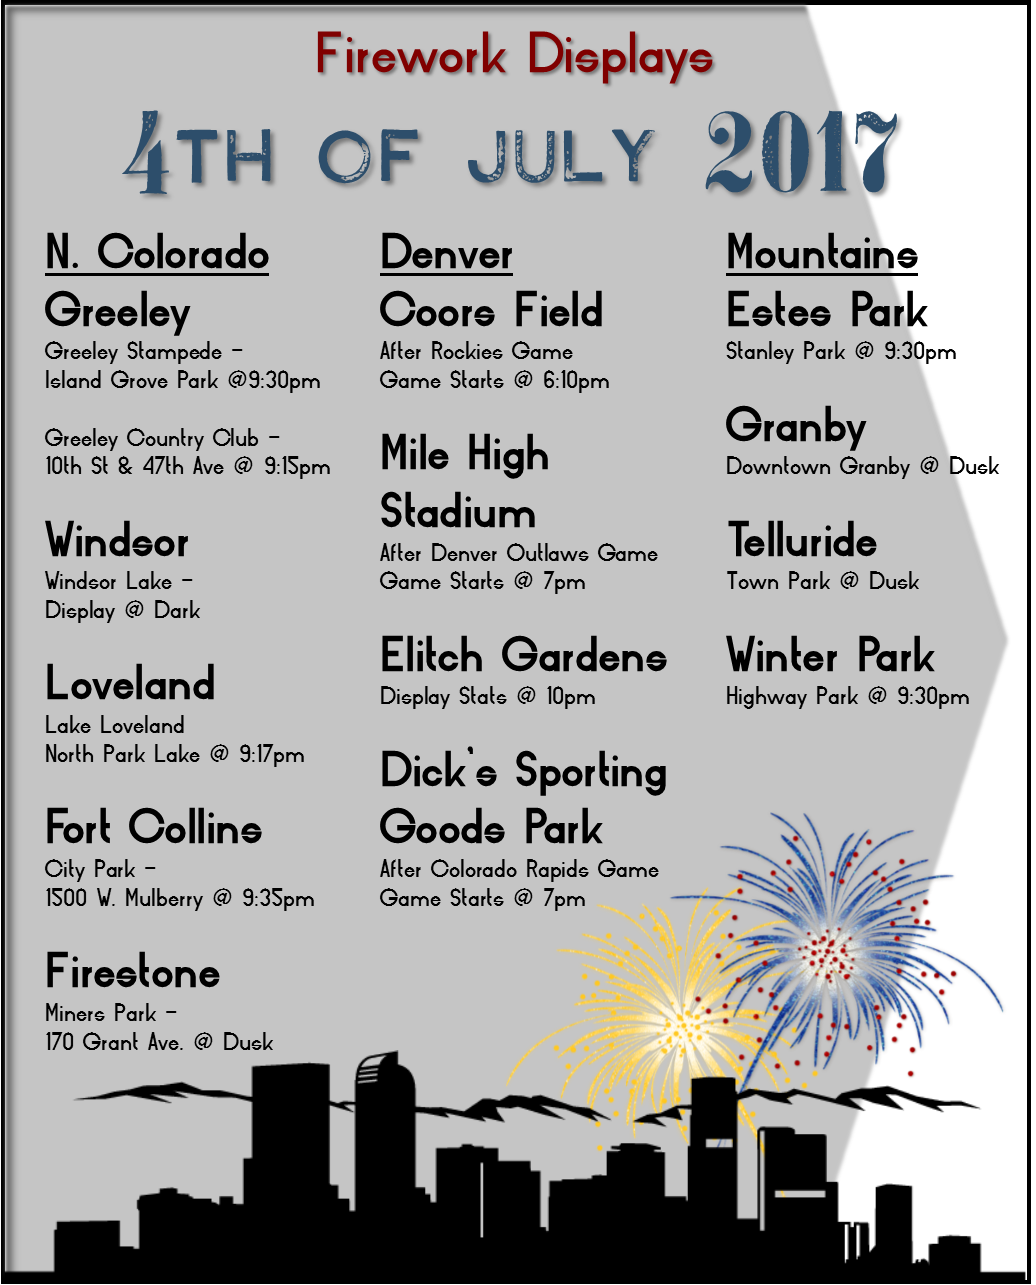 Firework Displays for 4th of July in Northern Colorado